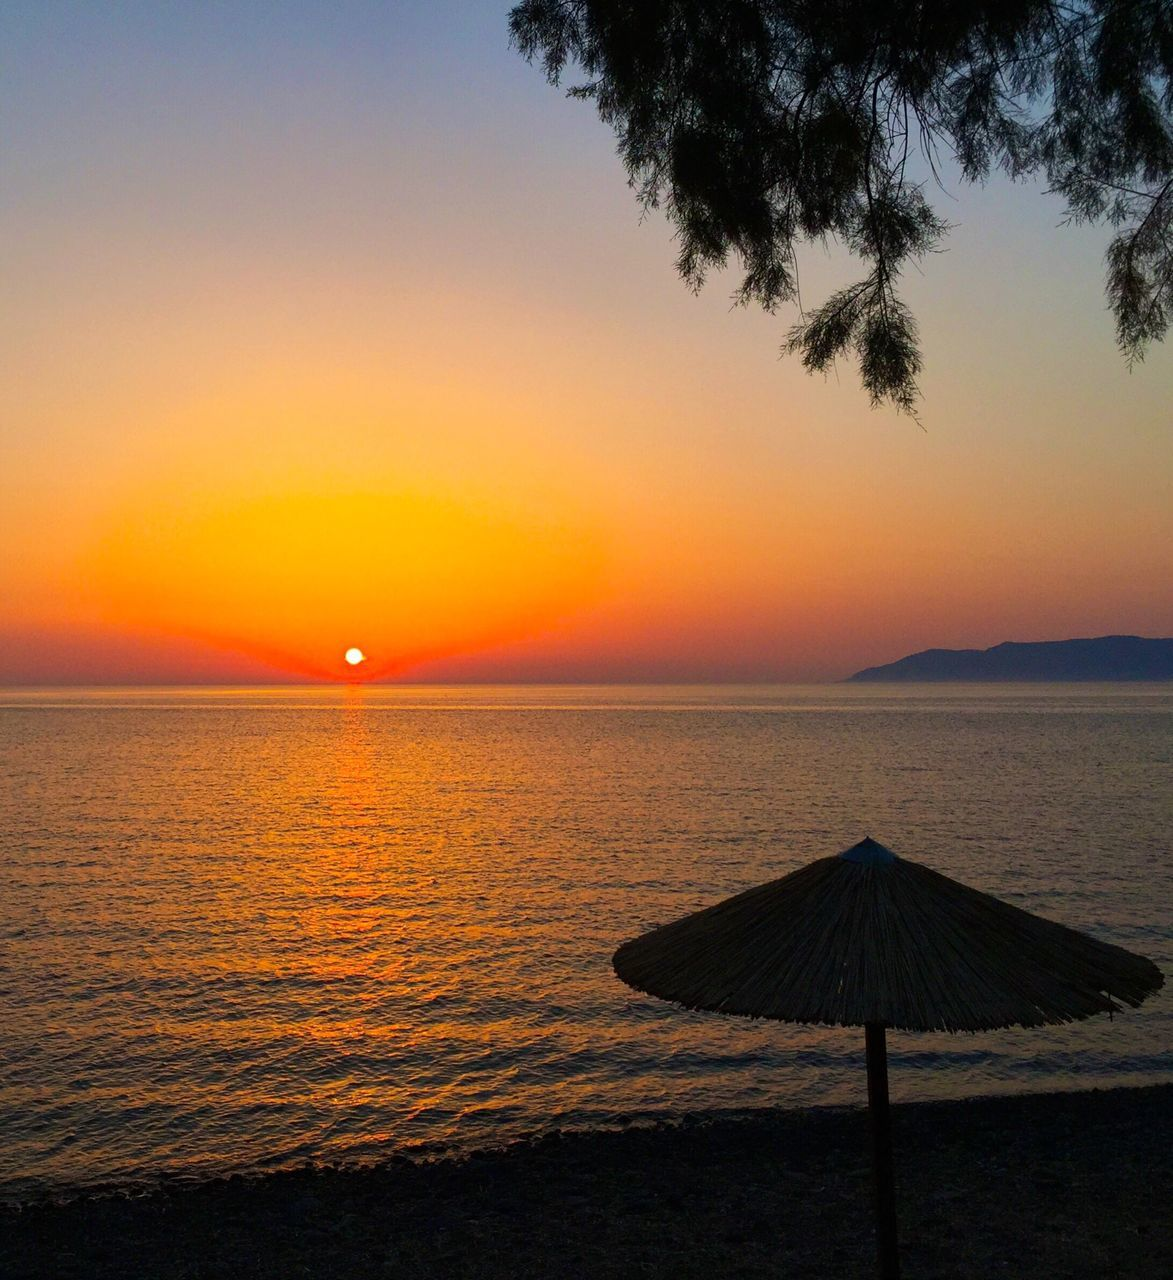 sunset, sea, beauty in nature, scenics, nature, tranquil scene, tranquility, water, beach, horizon over water, outdoors, sky, no people, day